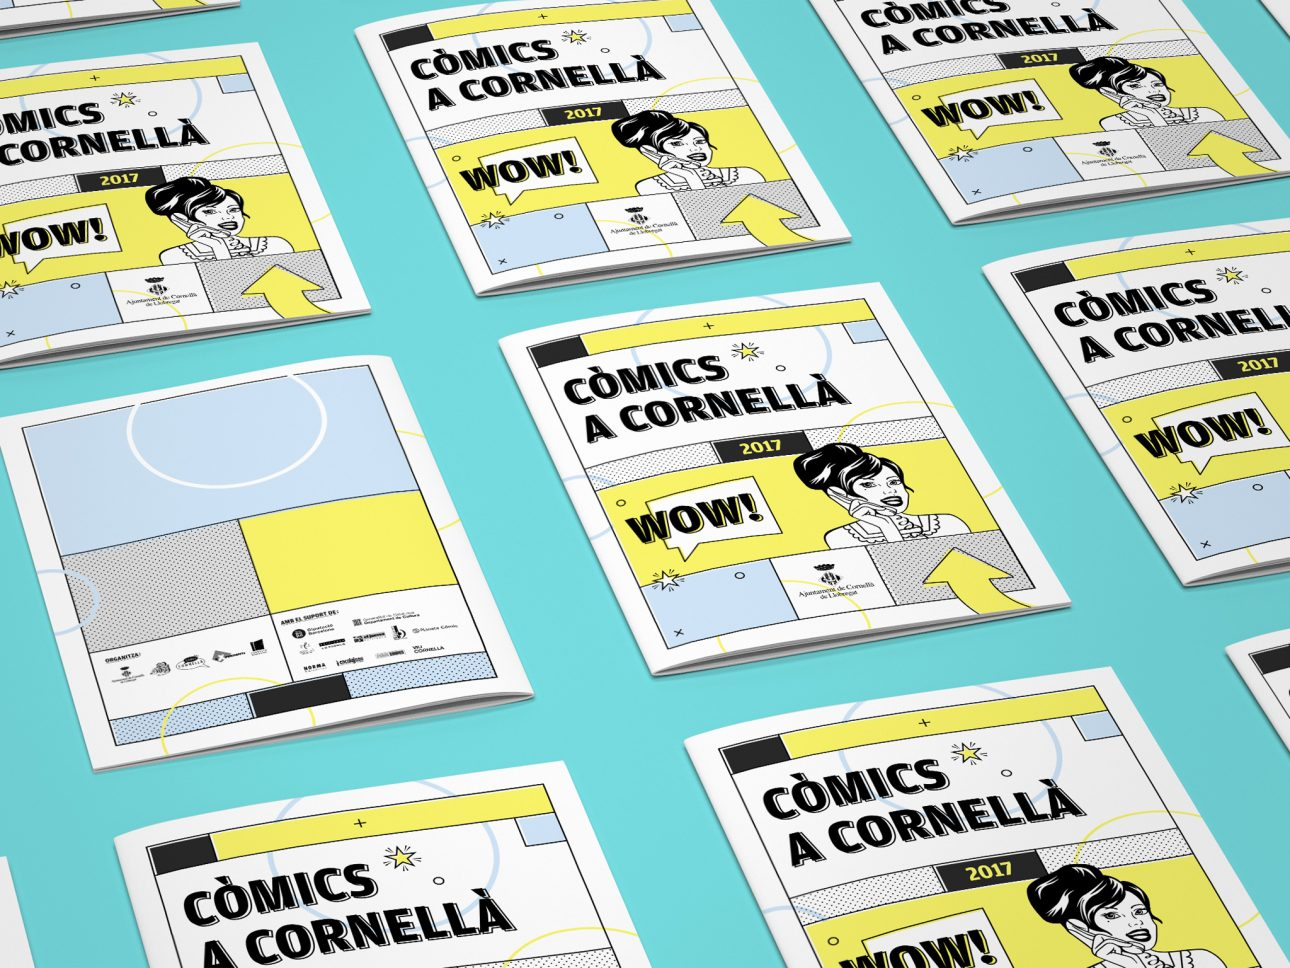 SD_COMIC-A-CORNELLA_A